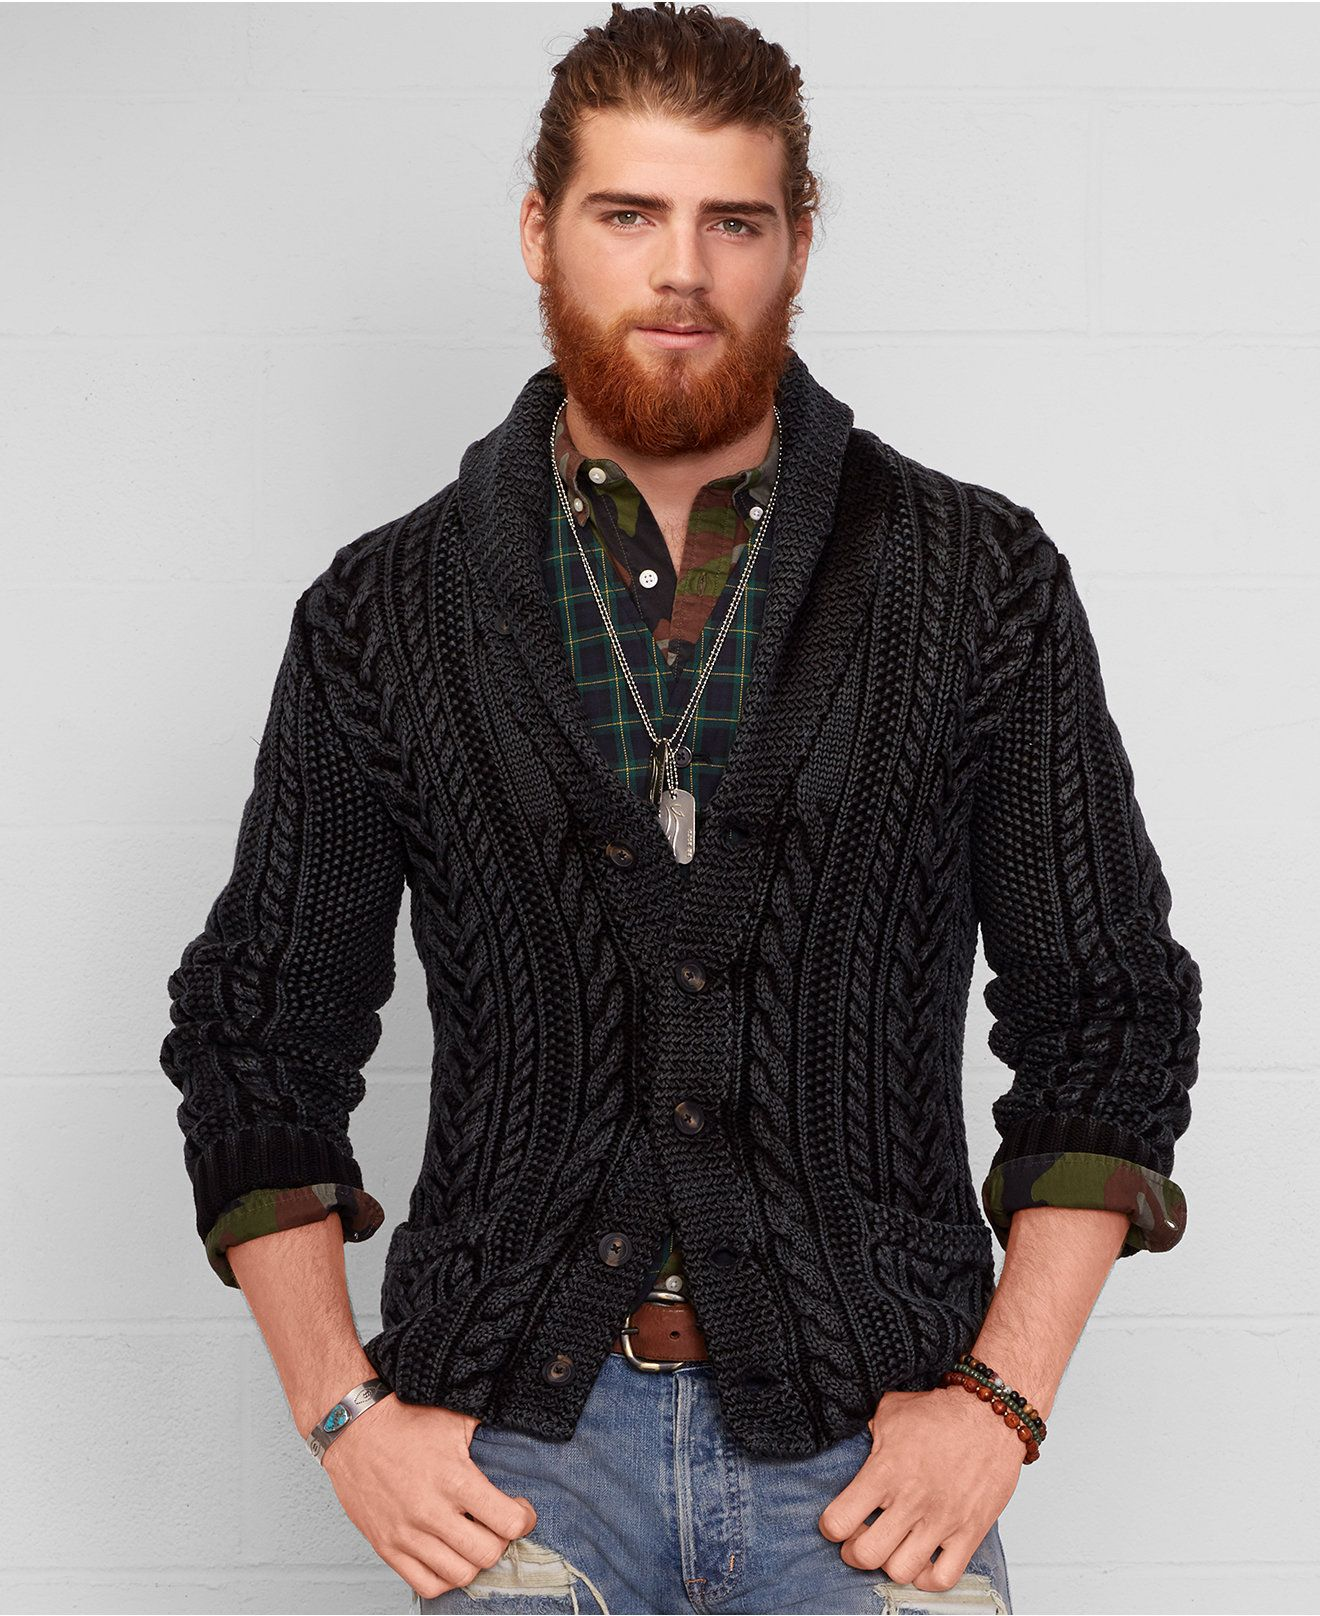 Denim & Supply Ralph Lauren Cable Knit Shawl Cardigan - Sweaters ...